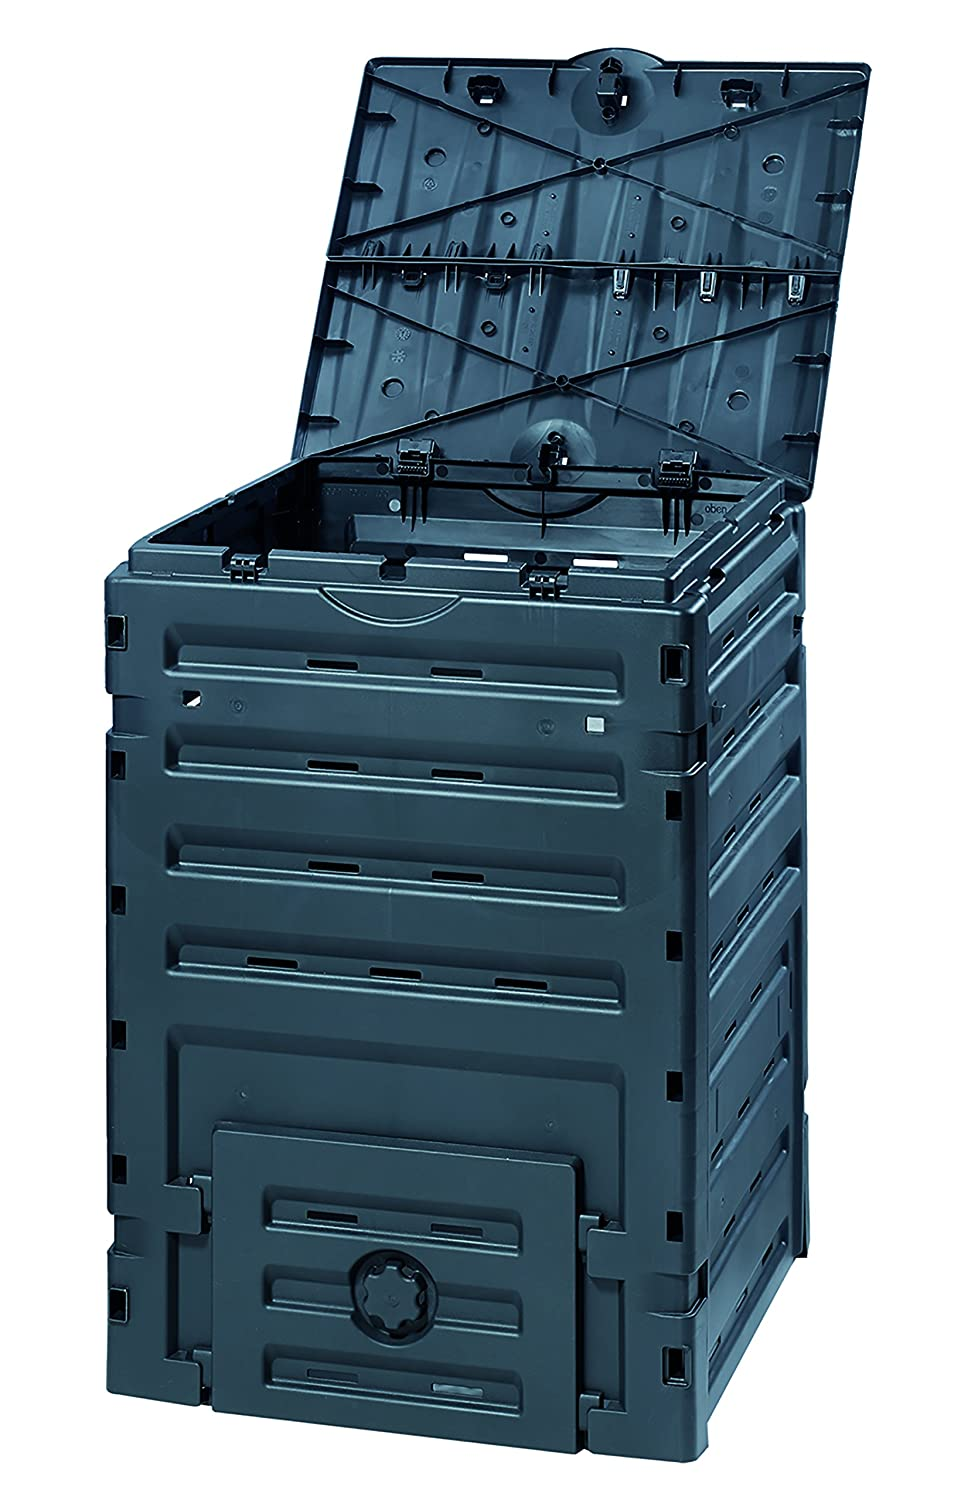 Exaco 628001 Eco-Master Polypropylene Composter, 120-Gallon, Black